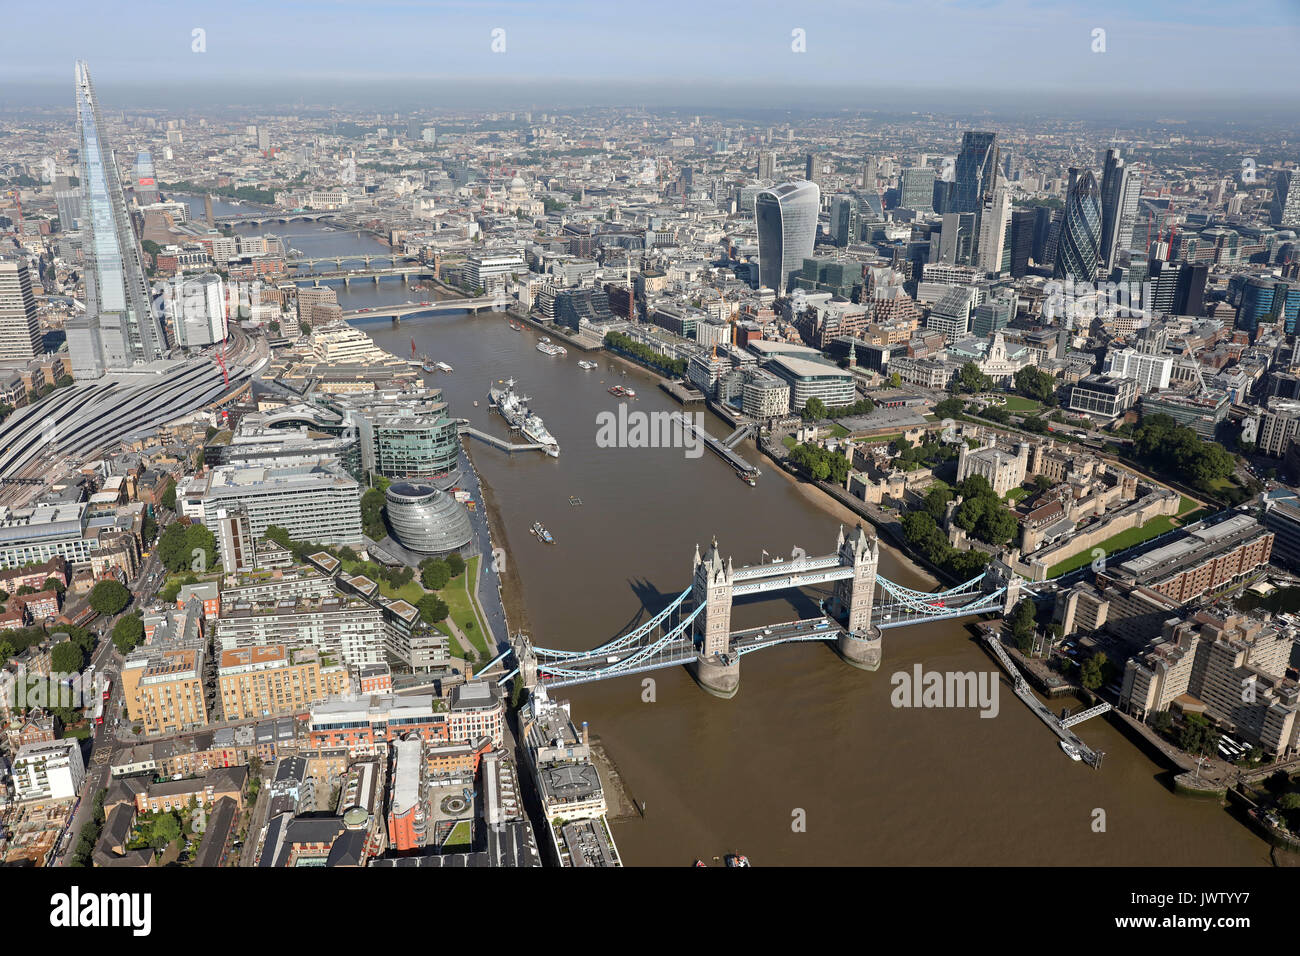 aerial view of Tower Bridge, Shard, Thames, & City of London skyline - Stock Image